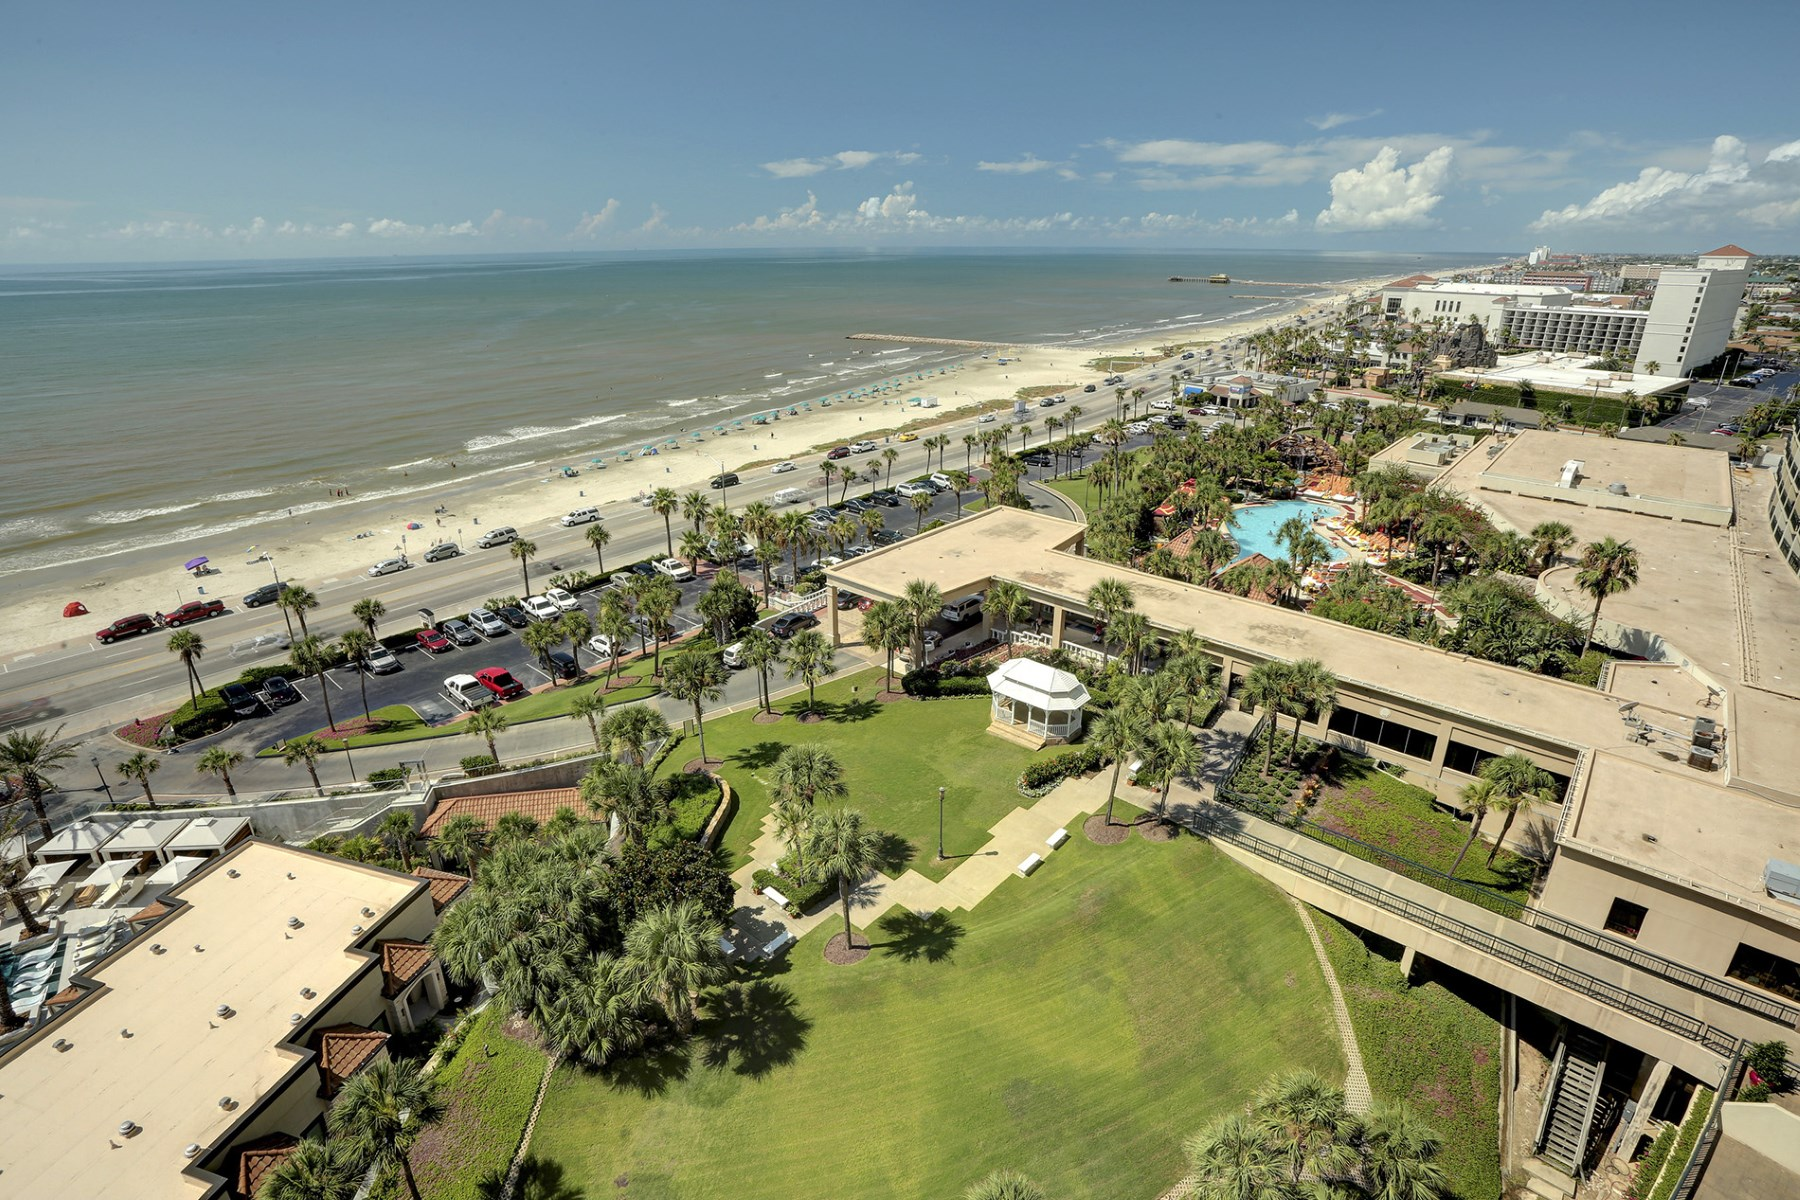 Condominium for Sale at 5220 Seawall Boulevard 5220 Seawall Boulevard Unit 1536 Galveston, Texas 77551 United States